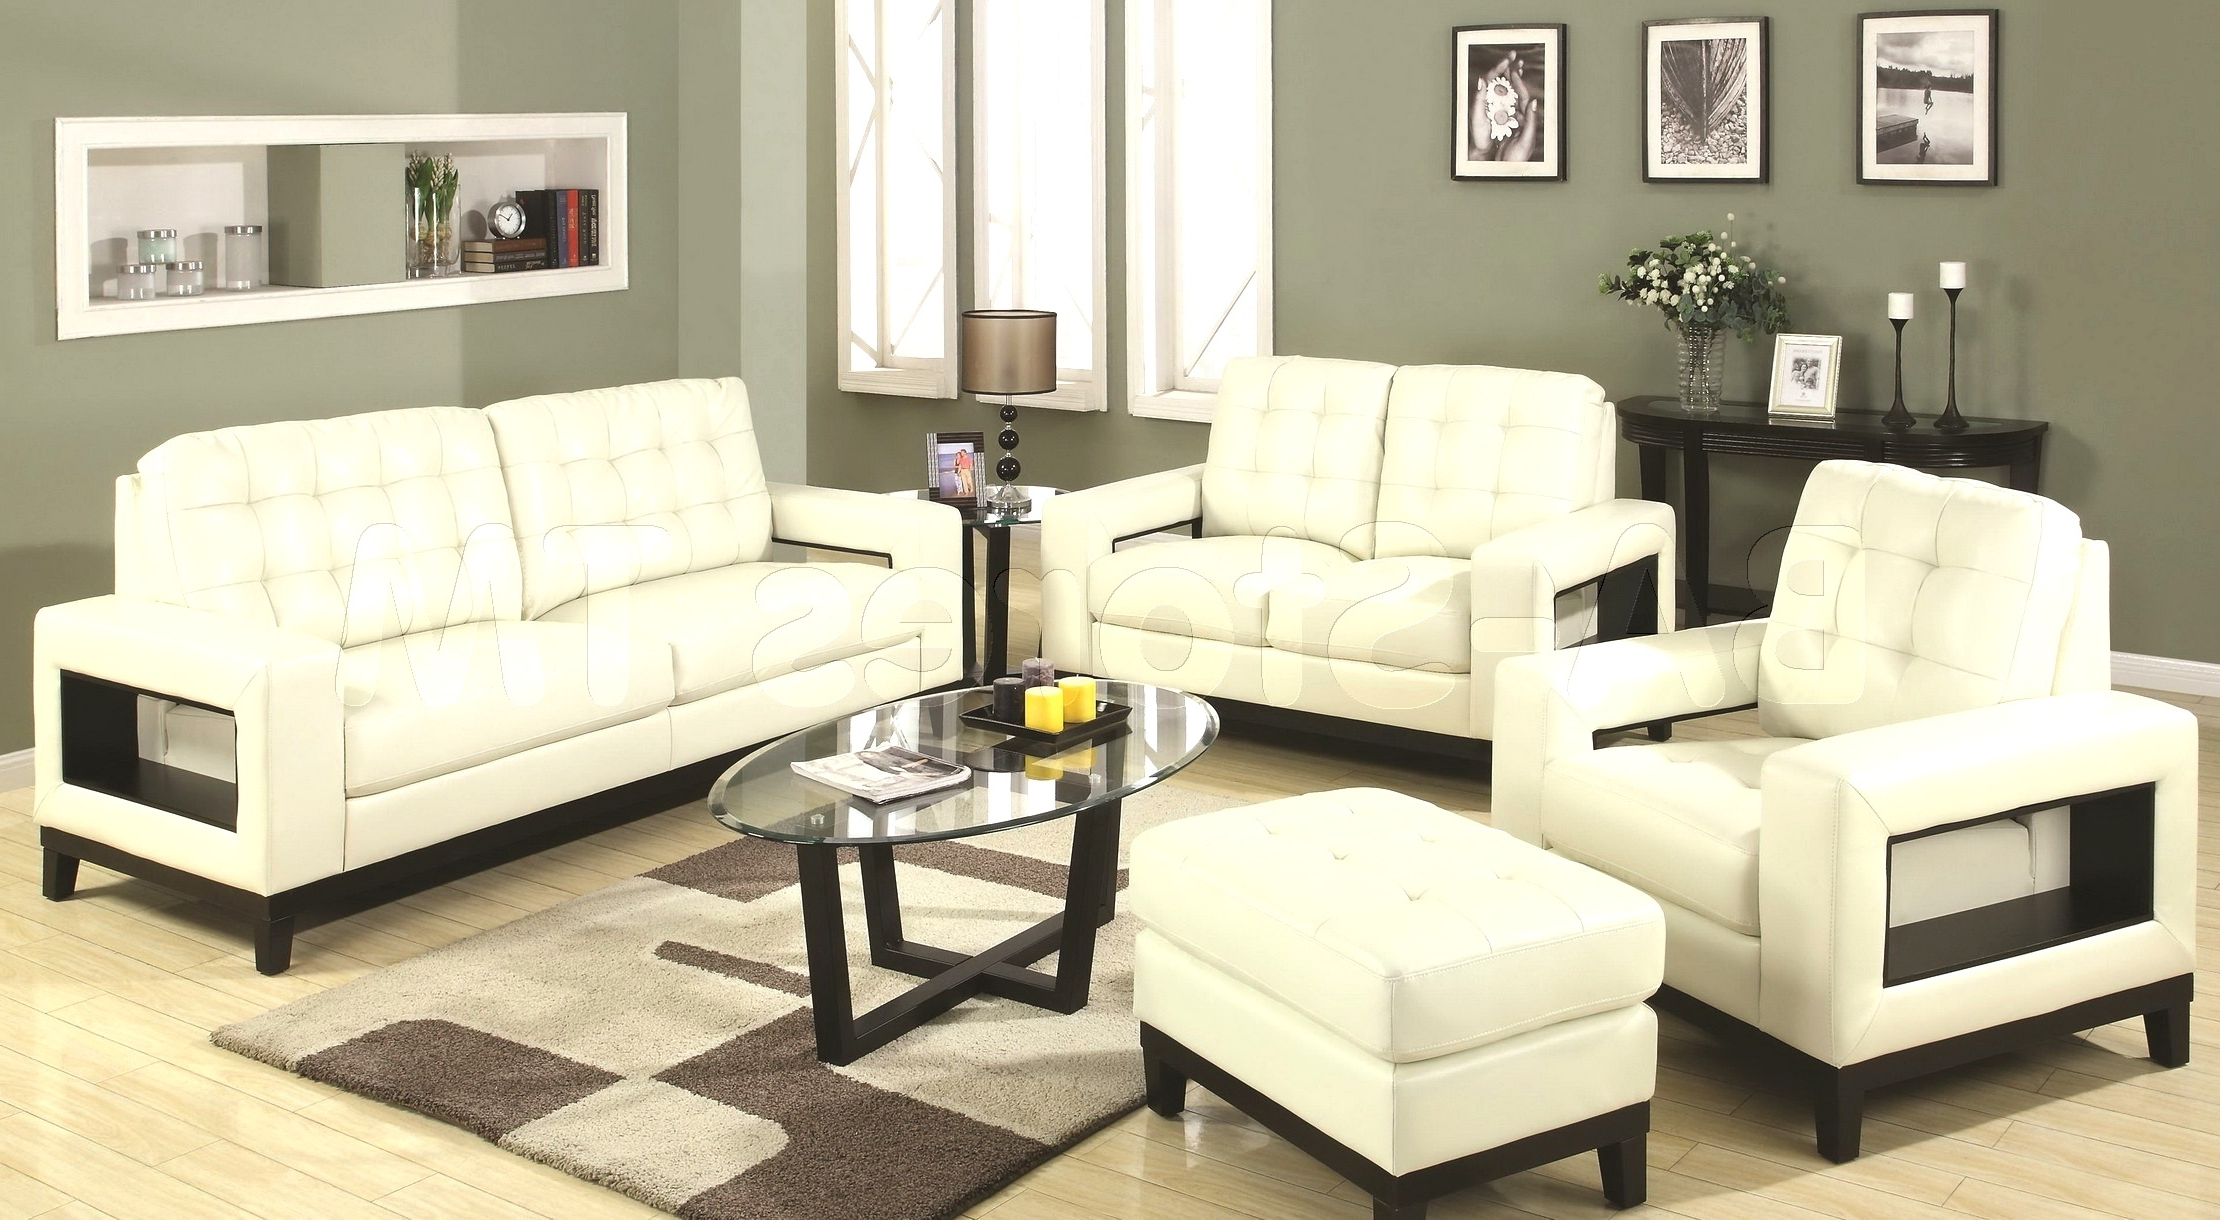 2018 Elegant Sofas Sets 79 Sofas And Couches Ideas With Sofas Sets Intended For Elegant Sofas And Chairs (View 3 of 15)